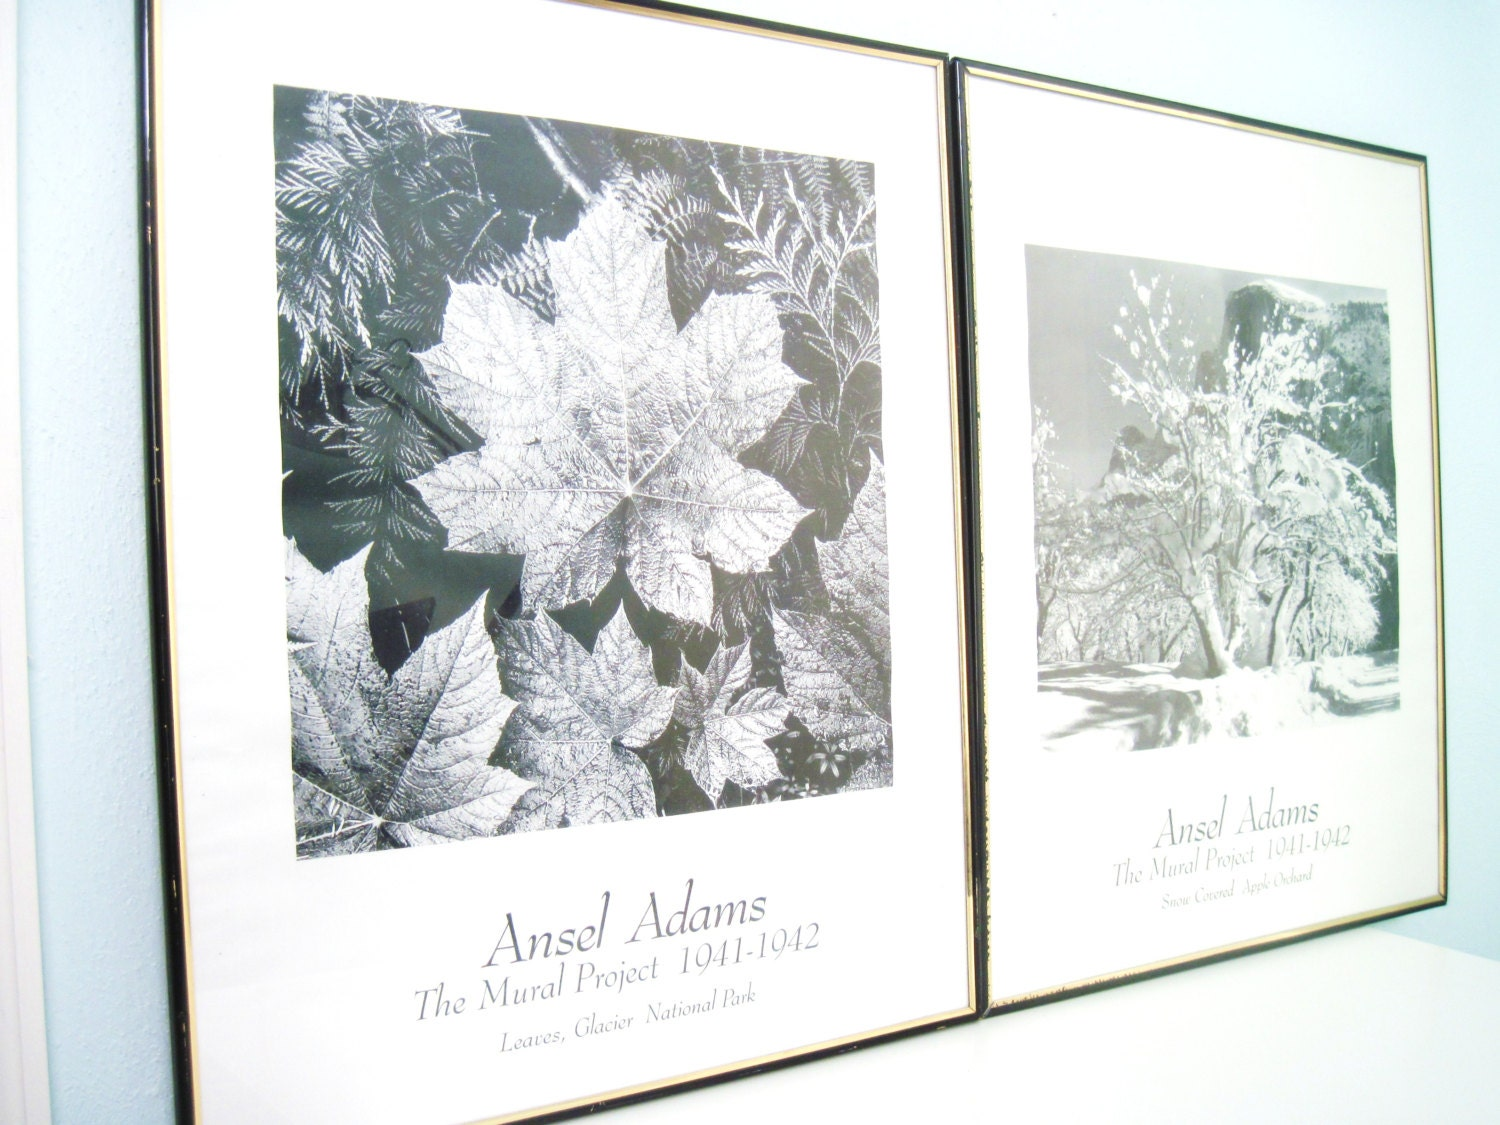 Vintage ansel adams framed photography by planetfriendlygoods for Ansel adams mural project 1941